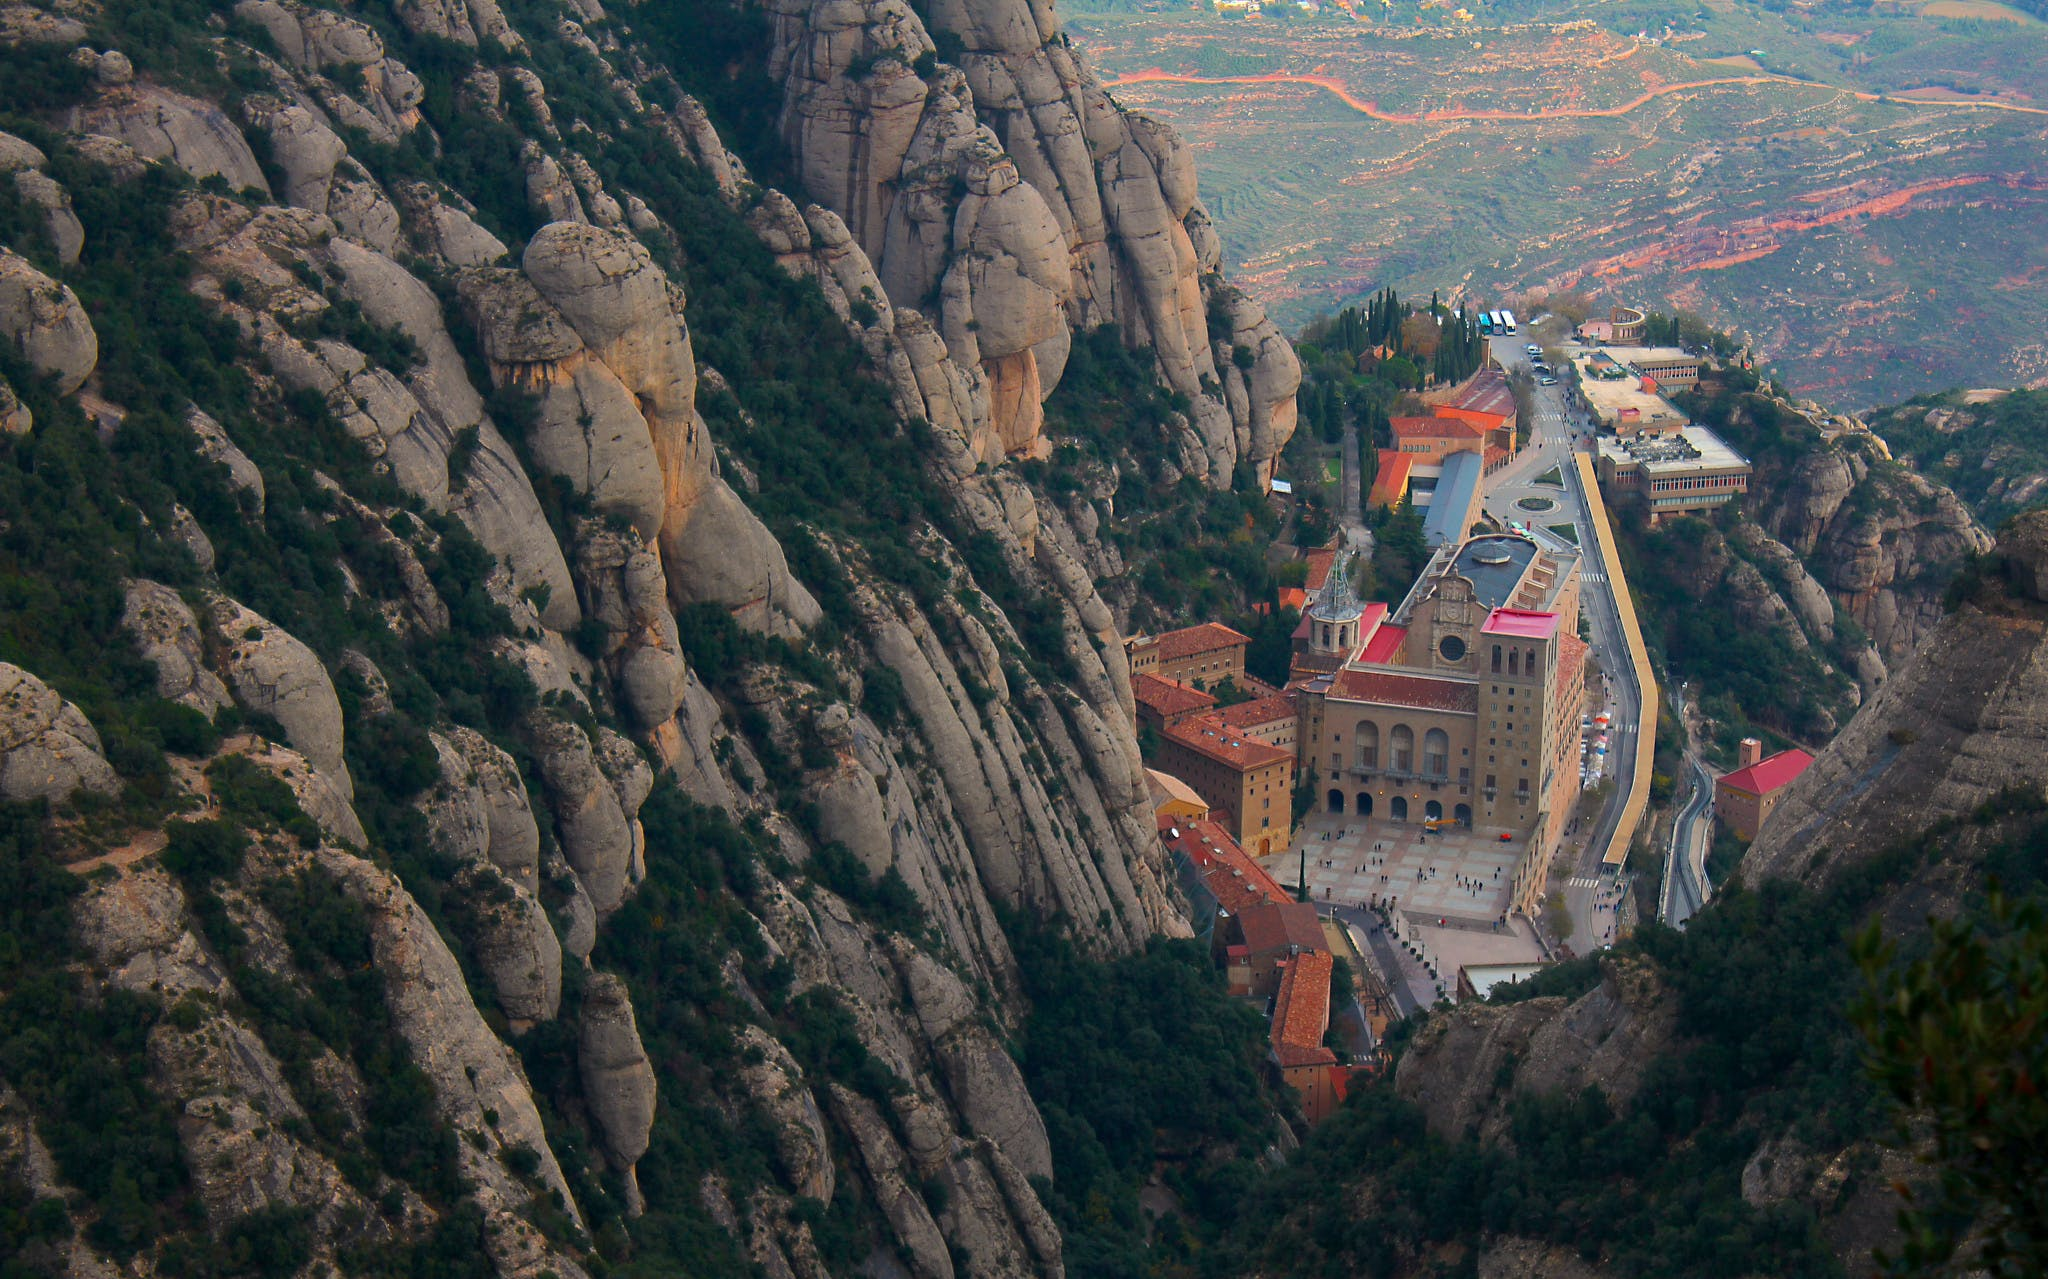 montserrat day out - all inclusive transportation pass from barcelona -1